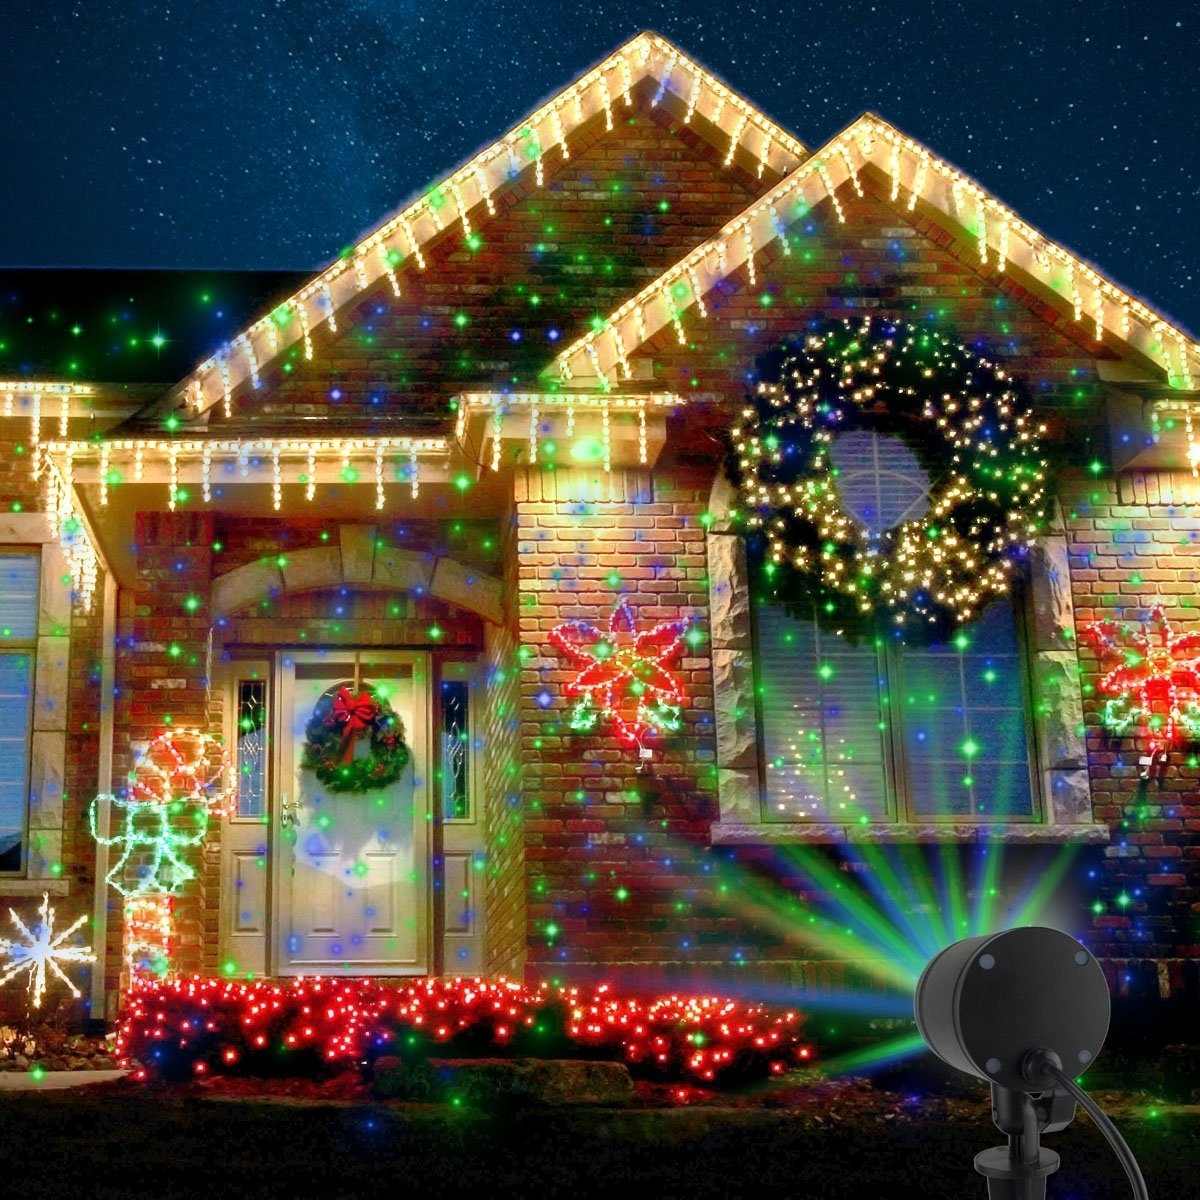 Laser Christmas Lights: Decorating Made Easy | The Children's Nook Intended For Outdoor Wall Xmas Lights (#7 of 15)